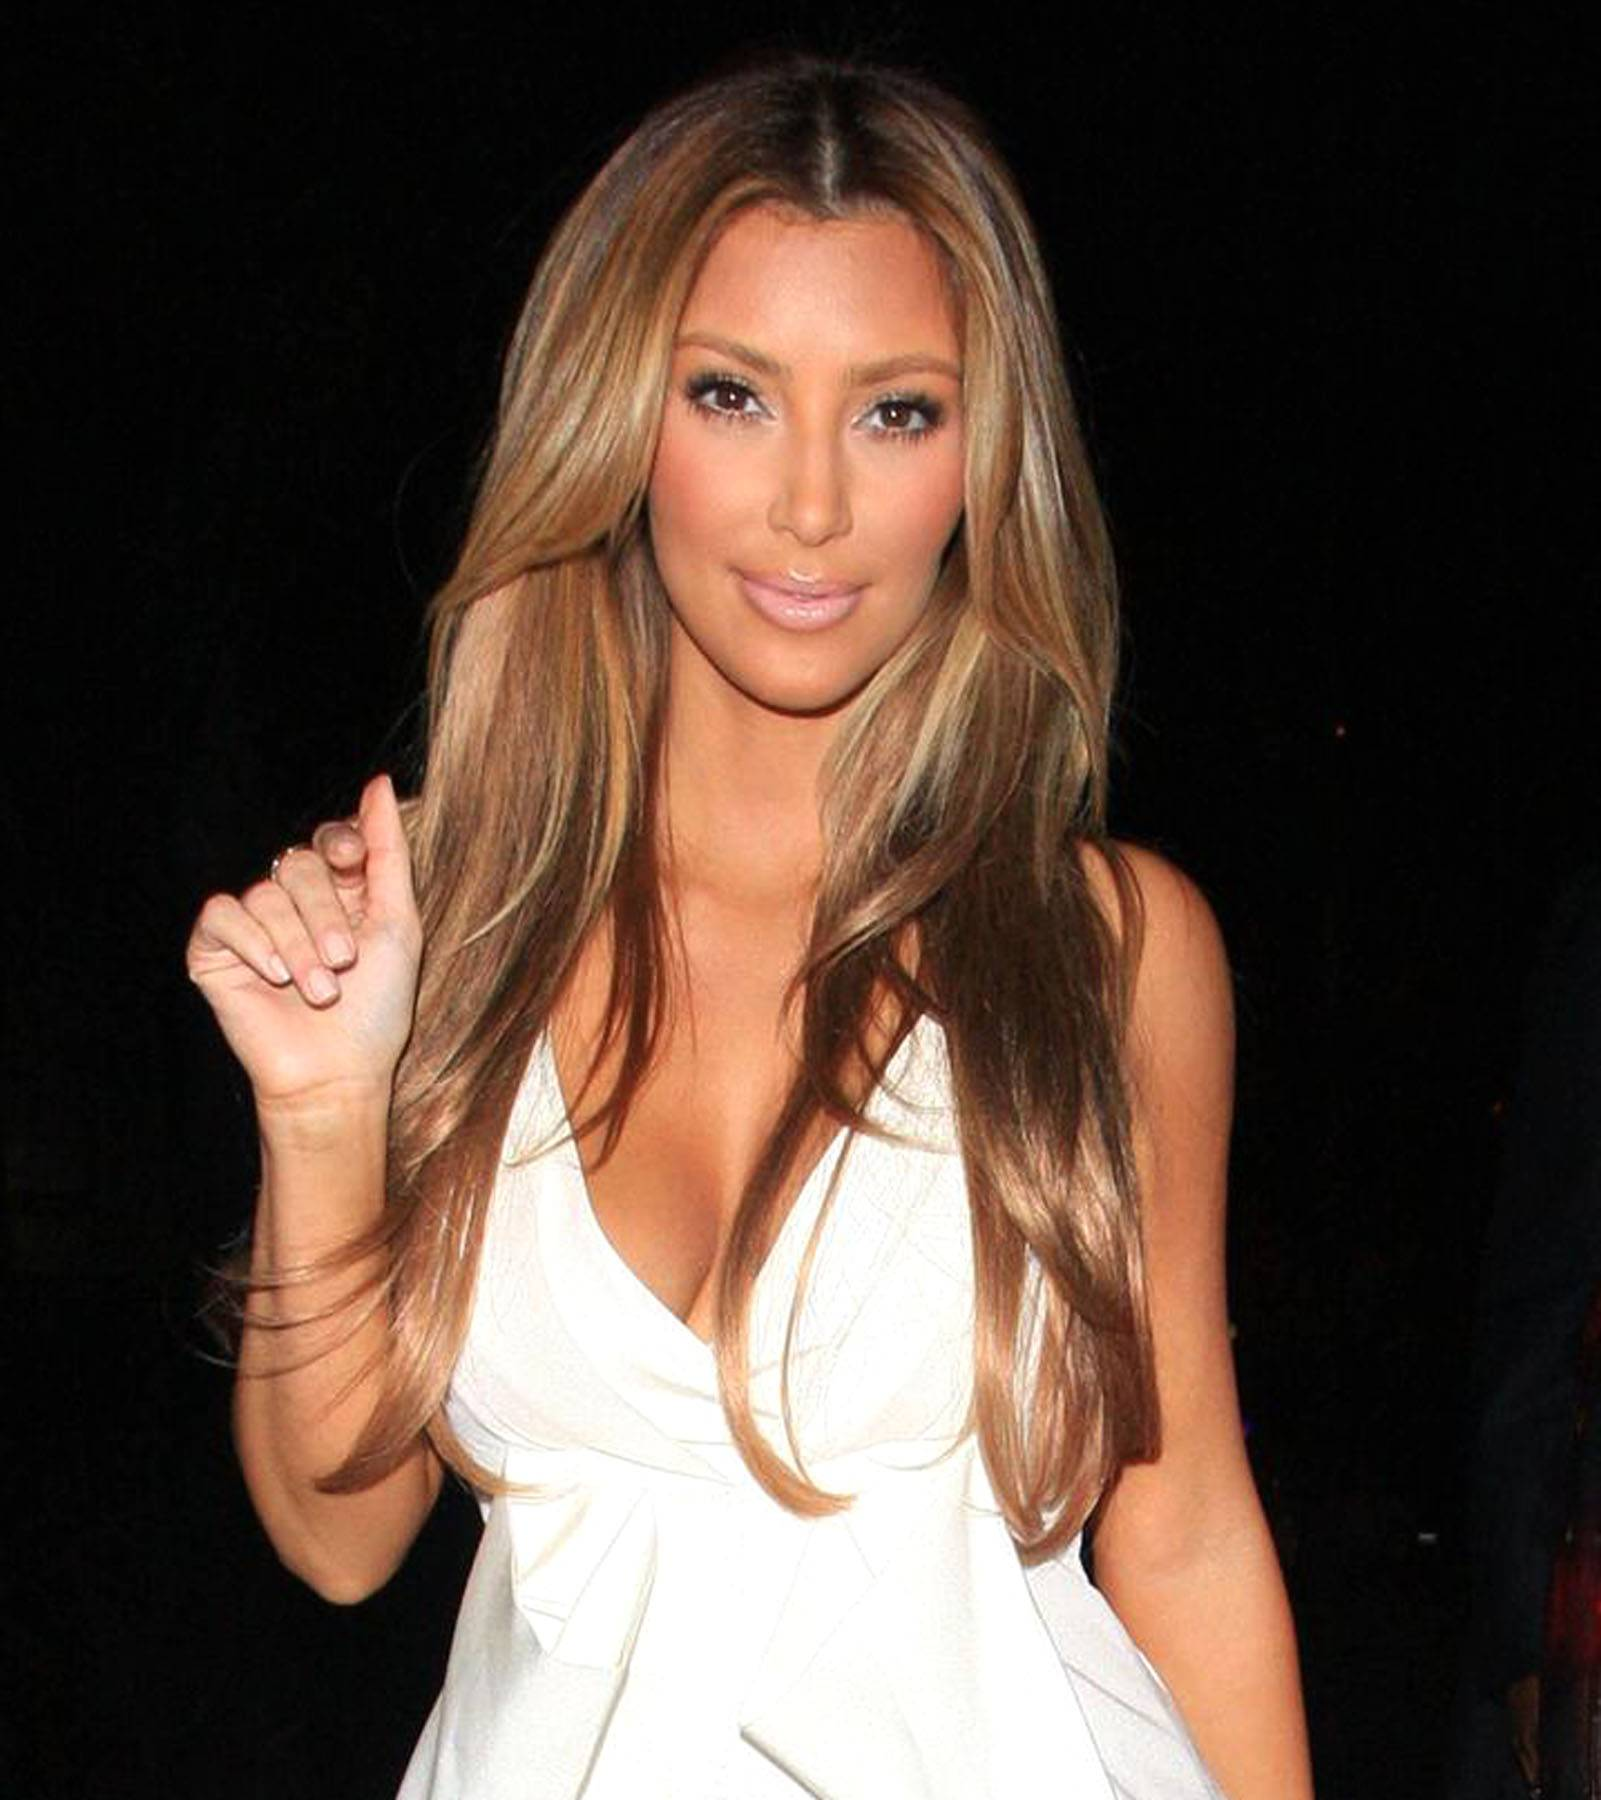 Back to Blonde - After rocking dark locks for a while, new mommy Kim Kardashian is running around Hollyweird with blonde tresses now. The new mommy is looking absolutely amazing these days and making a subtle fashion transition. Can't wait to see where Kimmy K.'s fashion sense takes her. (Photo: Hellmuth Dominguez / PacificCoastNews.com)